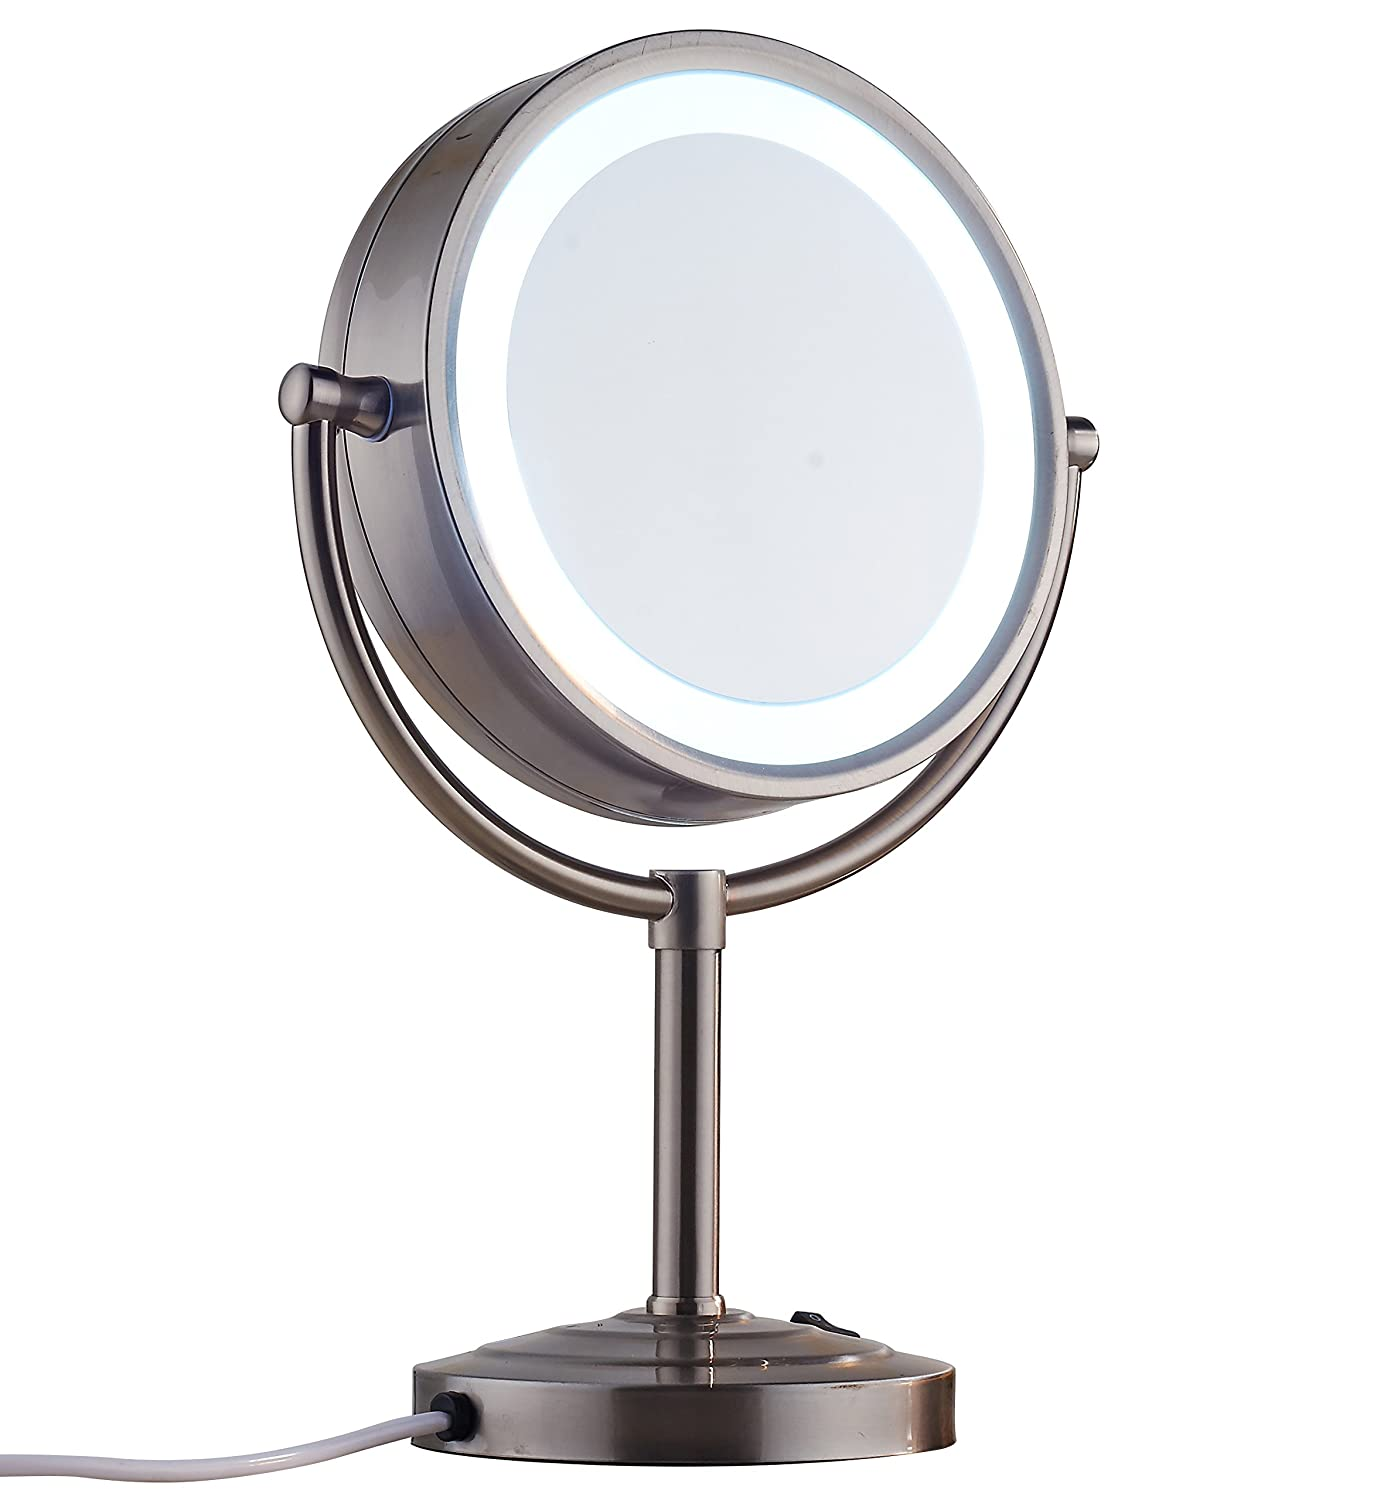 Cavoli 8.5 inch LED Makeup Mirror with 7x Magnification, Daylight Tabletop Two-sided,360 Swivel,Metal & Glass, Plug Powered Nickel Finish(8.5in,7x)